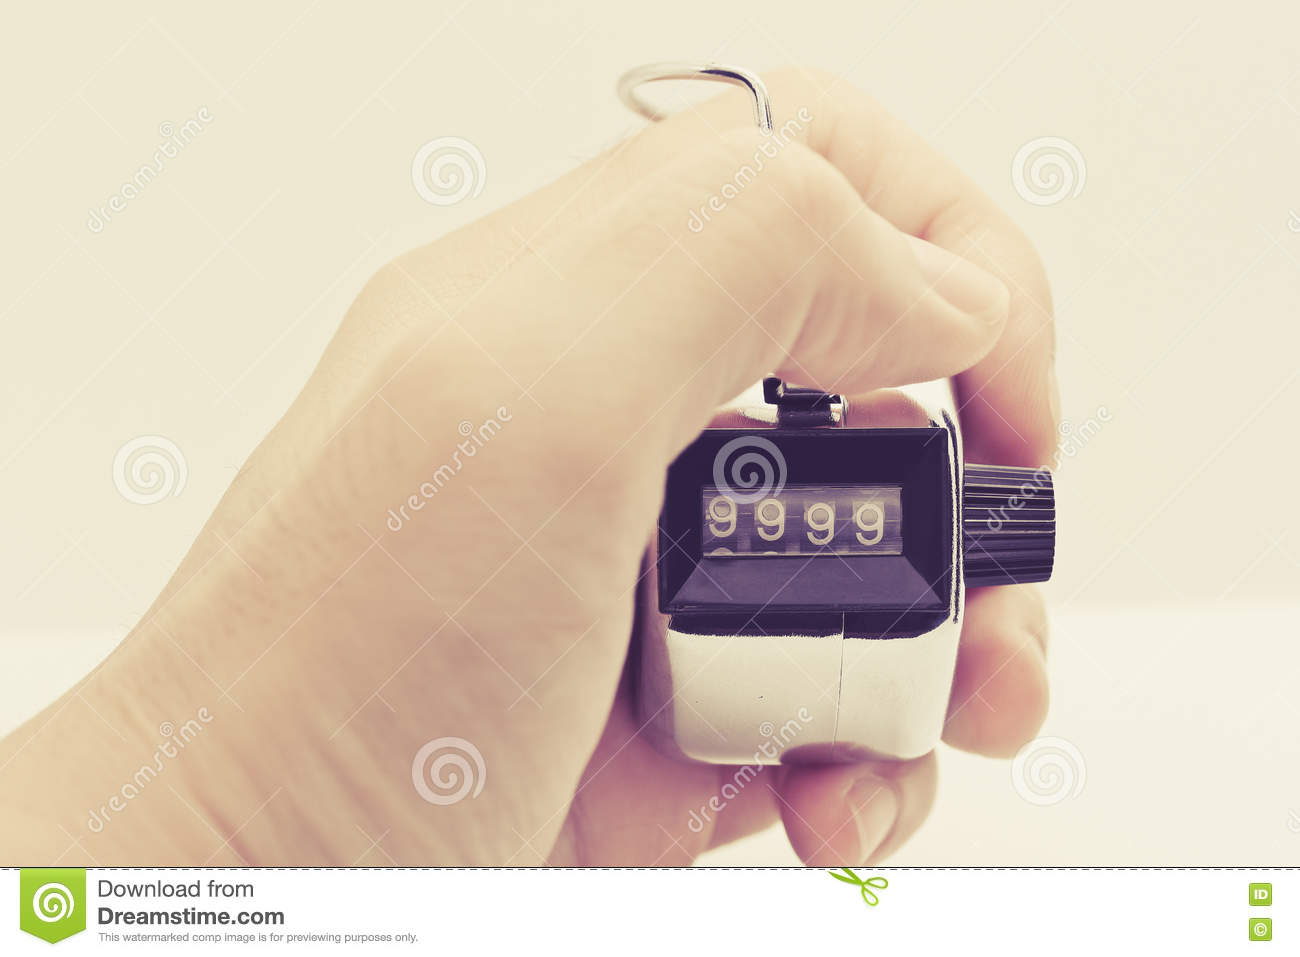 Tally counter stock photo  Image of hold, engagement - 66899578